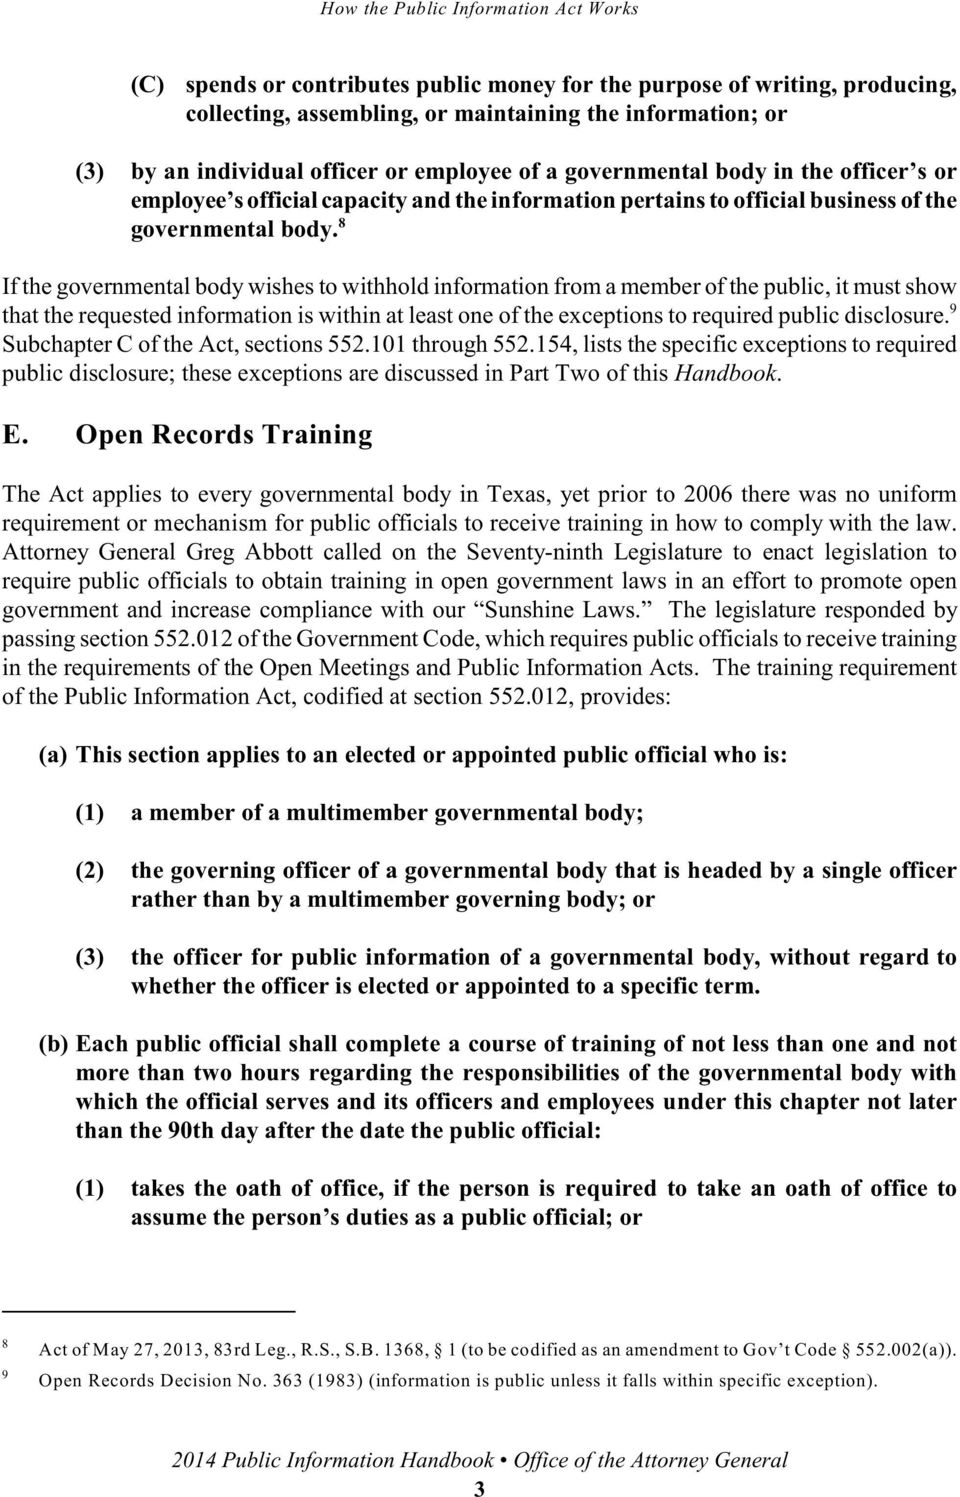 8 If the governmental body wishes to withhold information from a member of the public, it must show that the requested information is within at least one of the exceptions to required public